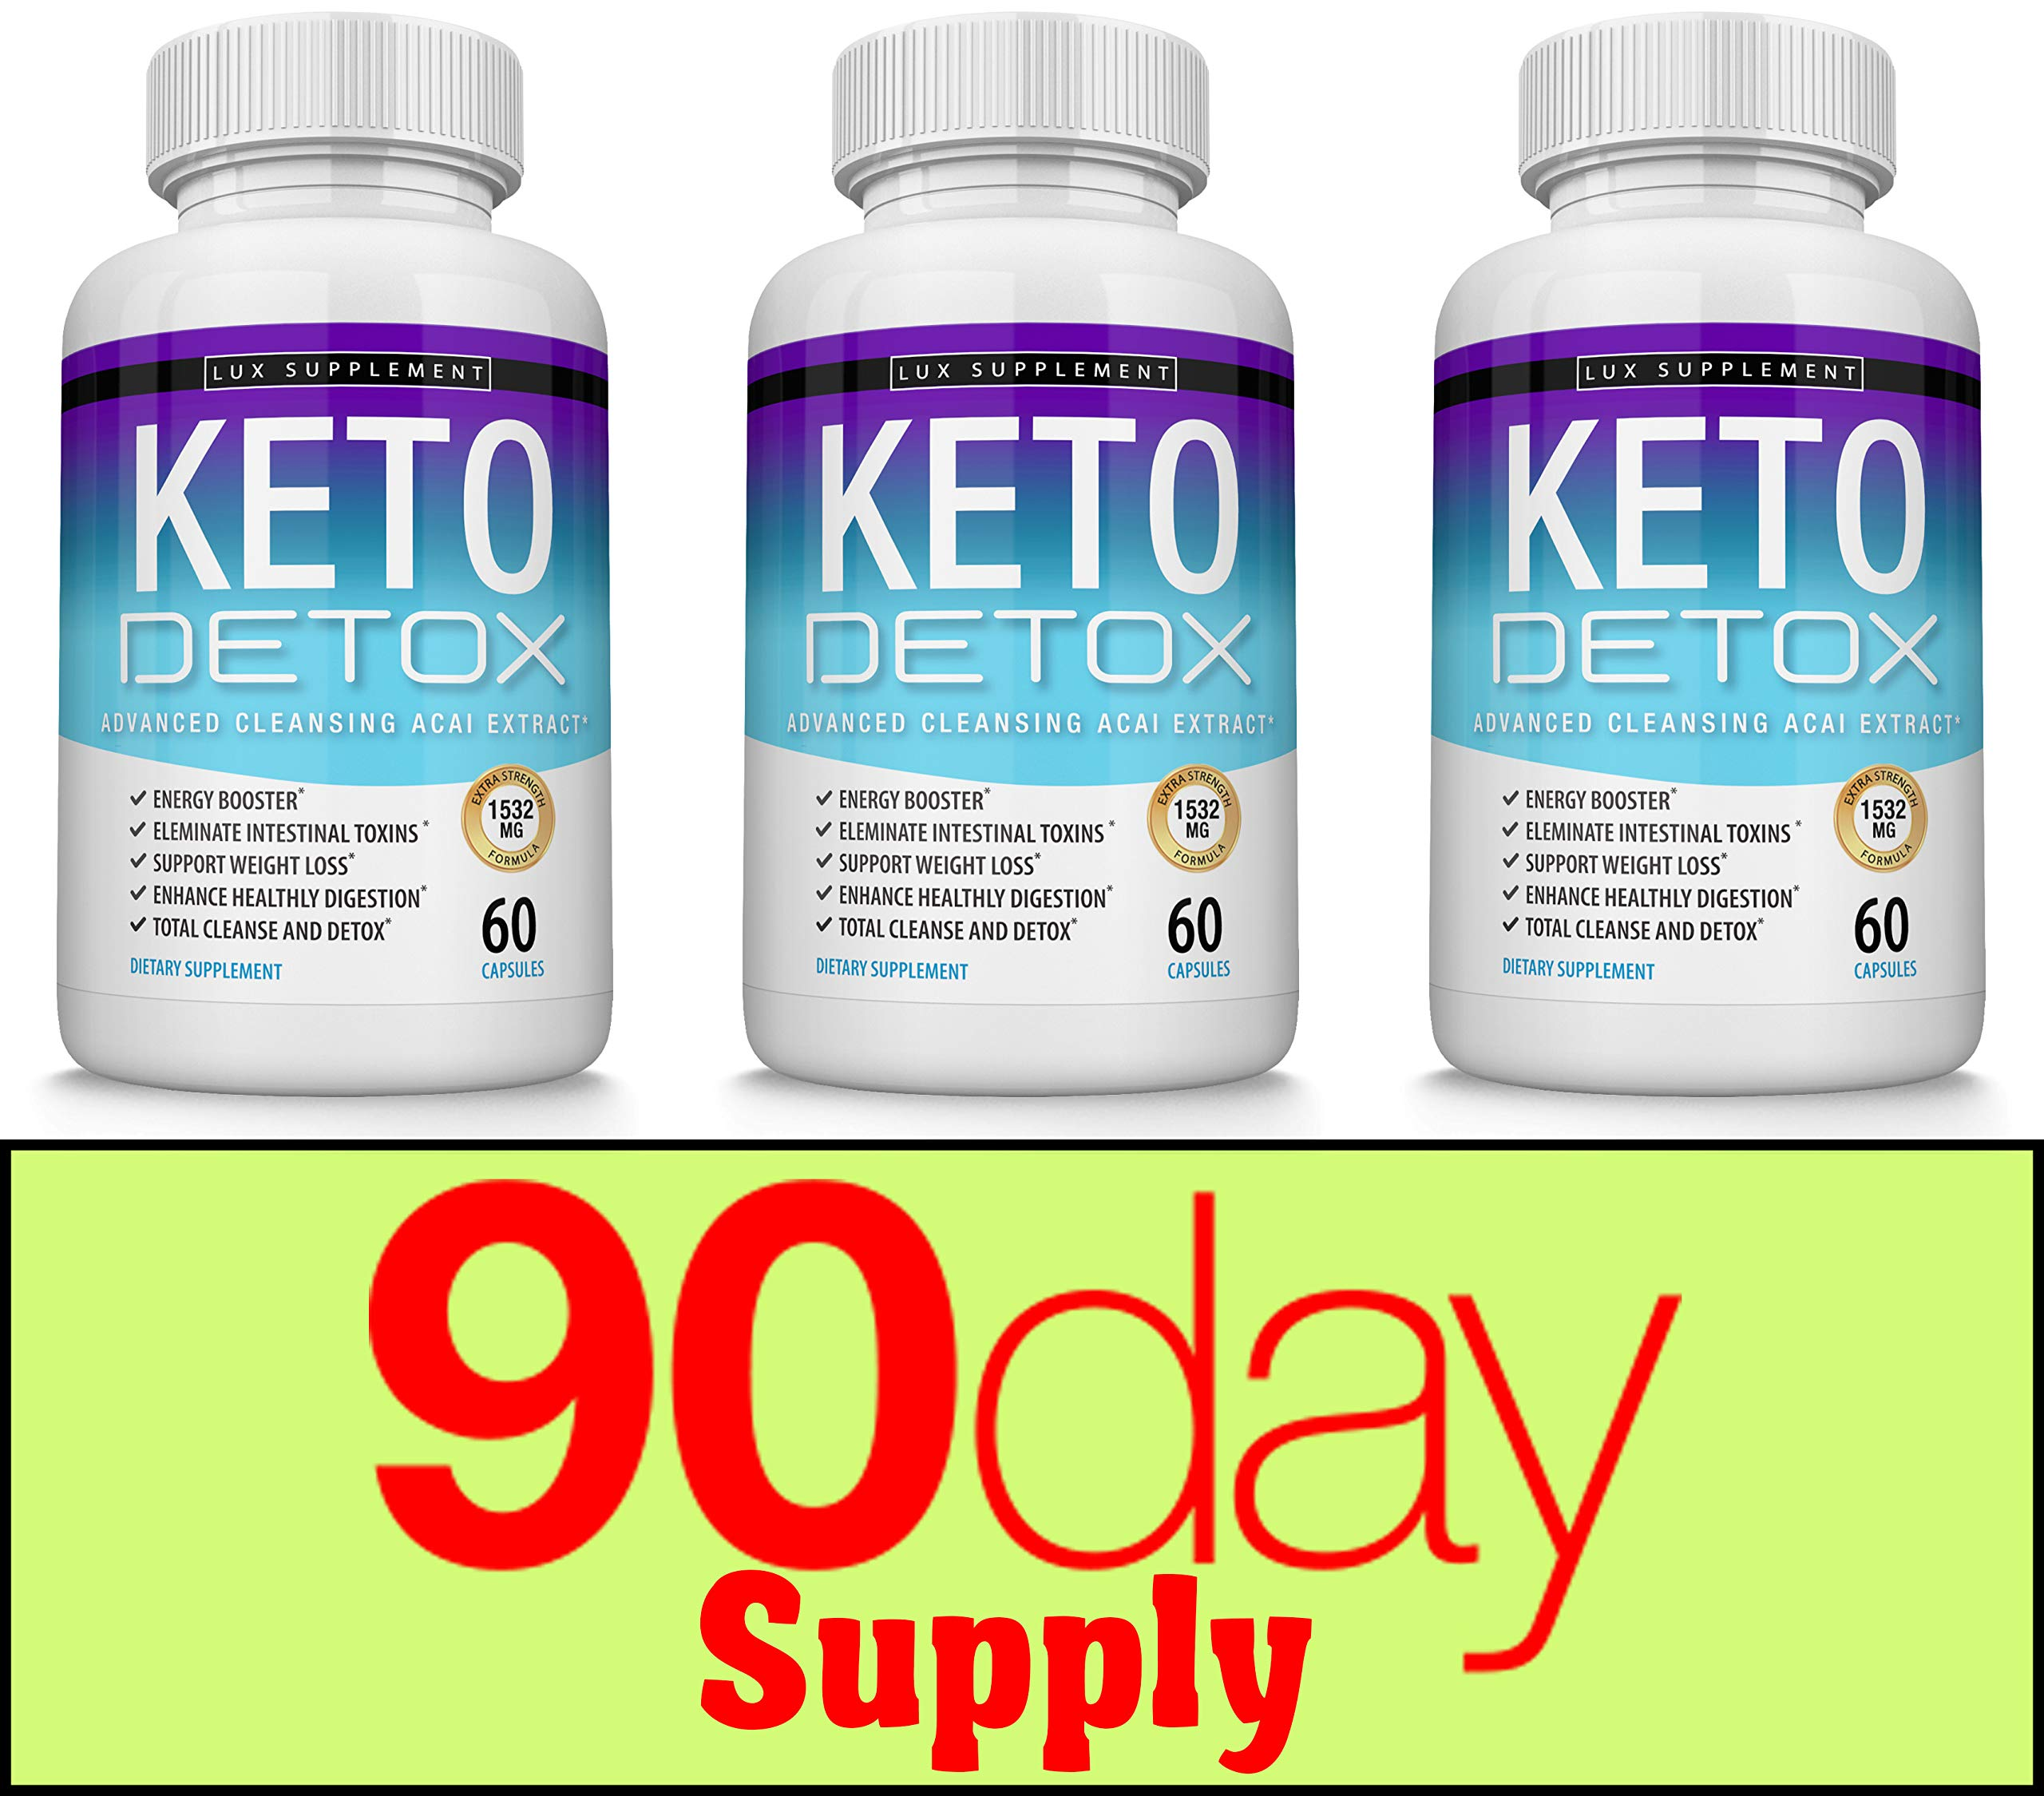 Keto Detox Pills Advanced Cleansing Extract - 1532 Mg Natural Acai Colon Cleanser Formula Using Ketosis & Ketogenic Diet, Flush Toxins & Excess Waste, for Men Women, 60 Capsules, Lux Supplement by Lux Supplement